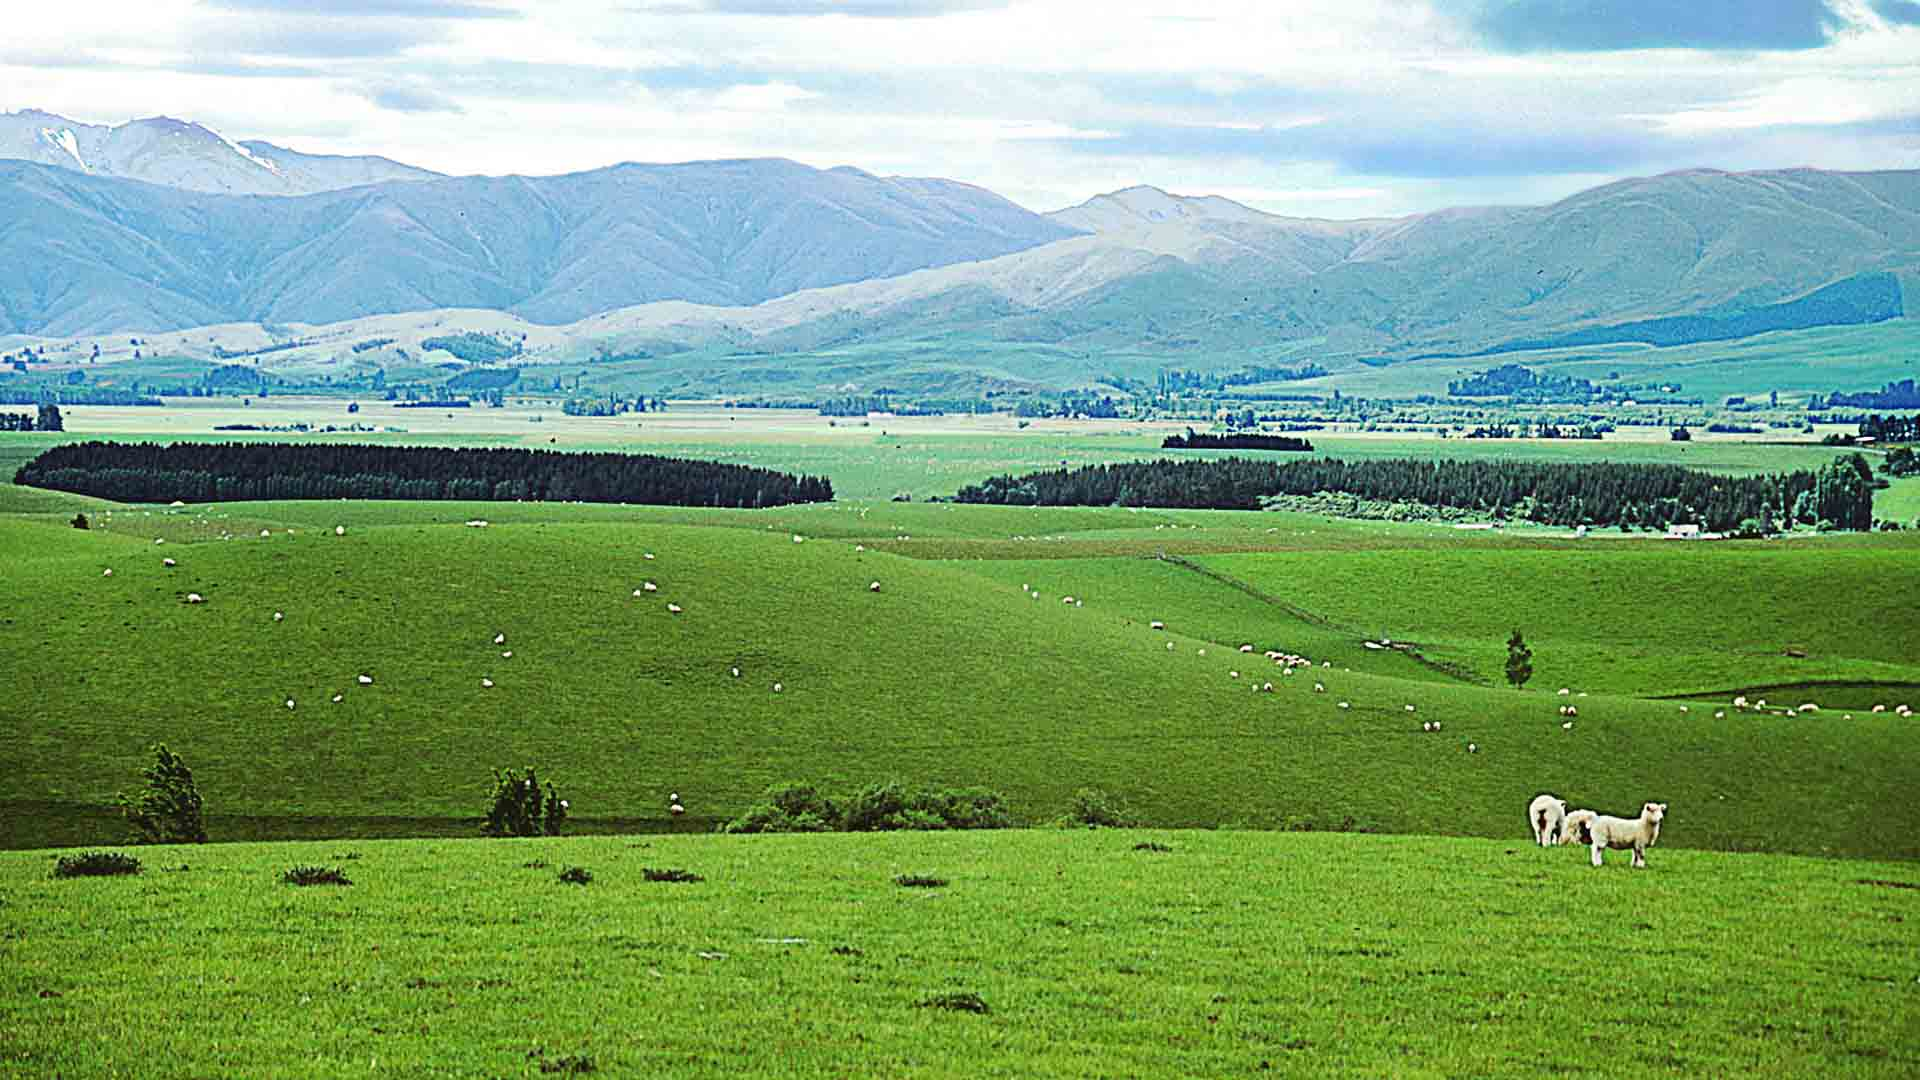 New Zealand's rolling hills. Photo credits: nz.mstecker.com